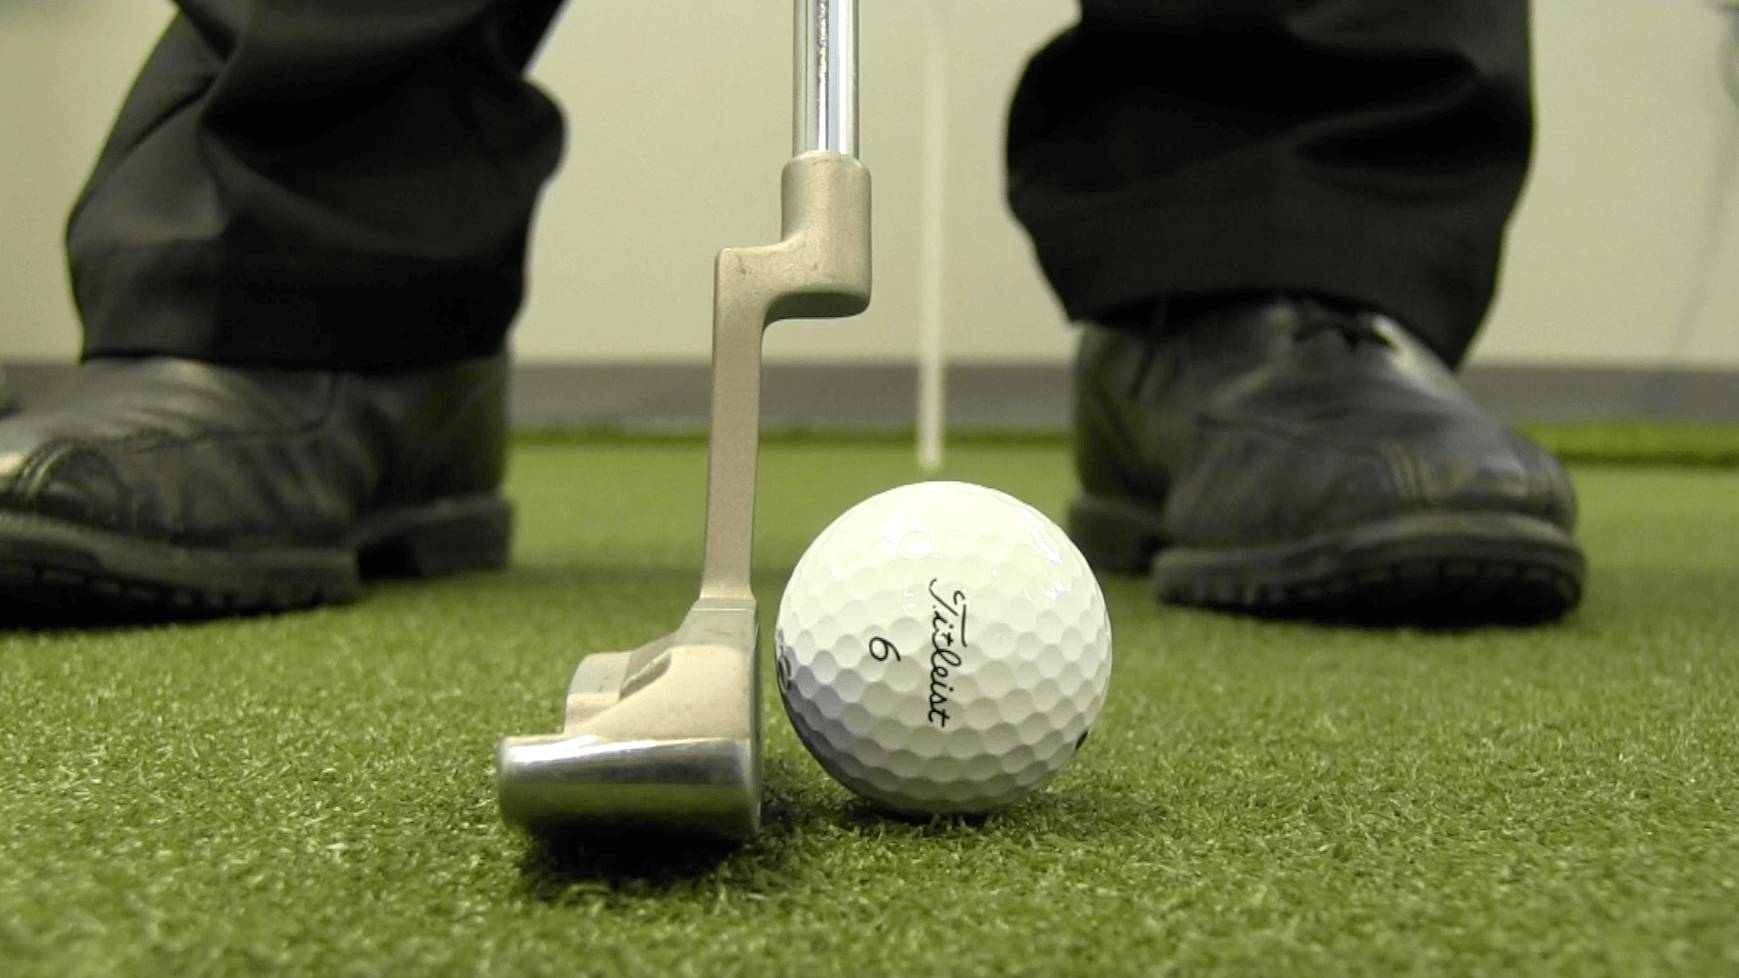 Having a neutral putter grip allows you to use the putter as it was intended, with the loft built into it